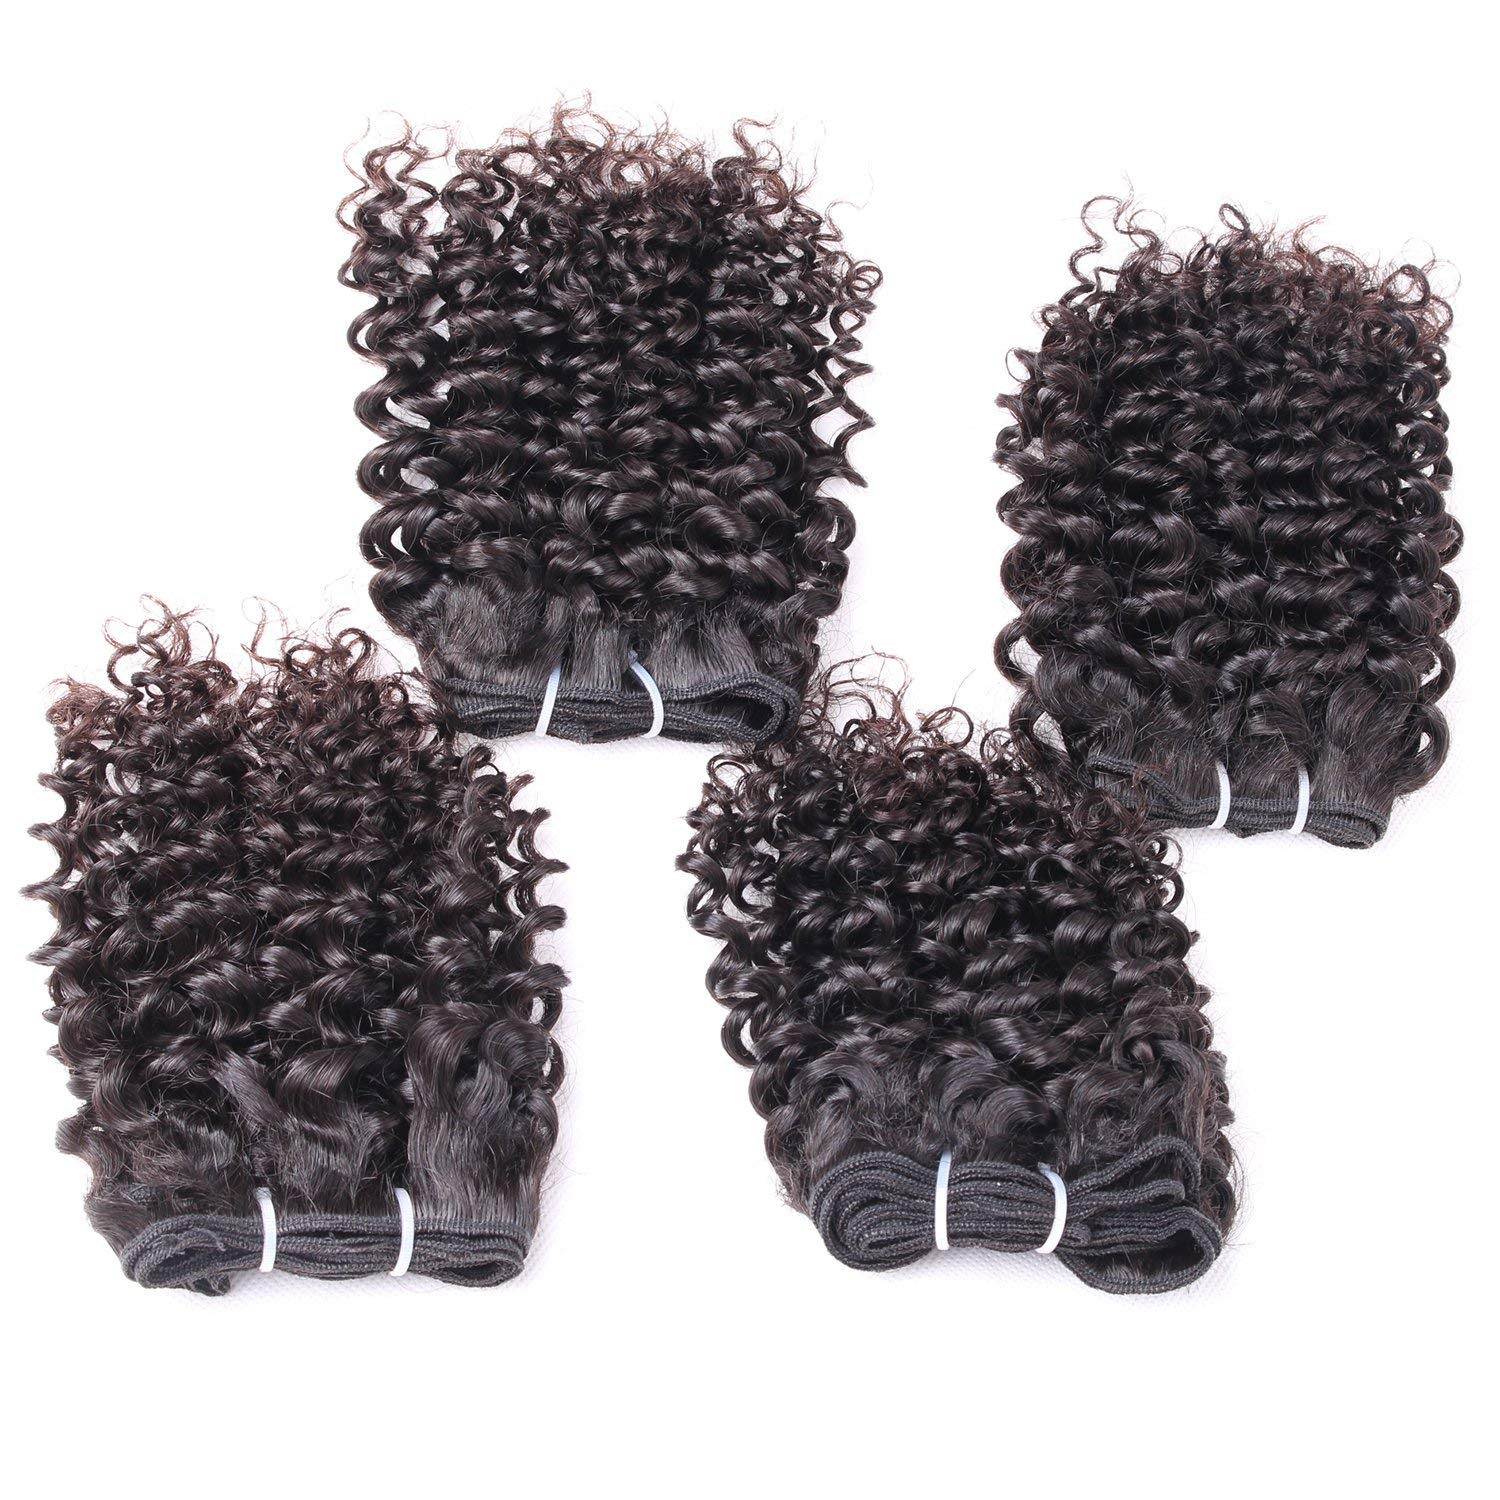 "Calavaca Brazilian Curly Human Hair 4 Bundles With 4x4 Closure Unprocessed Human Remy Hair Short Spiral Bouncy Curls Weave Funmi Virgin Hair Weft Natural Black 240Gram/lot(10"", Funmi with Closure)"